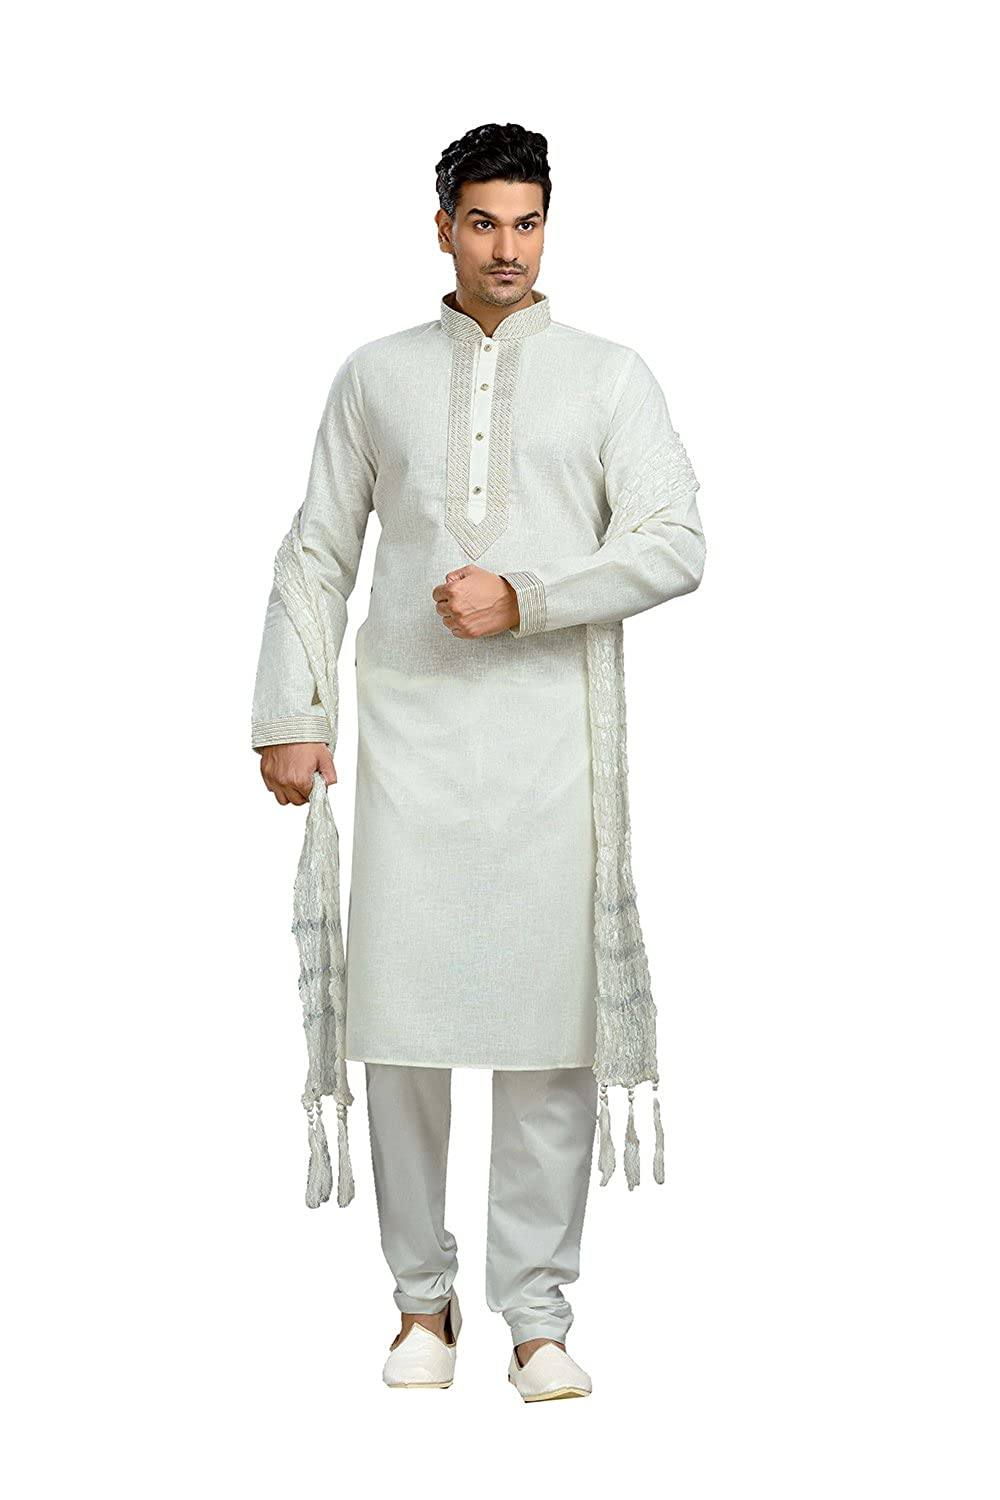 CANDY VINES Kurta Pajama Ready Made Indian Ethnic Dupion Silk Casual Mans Wear